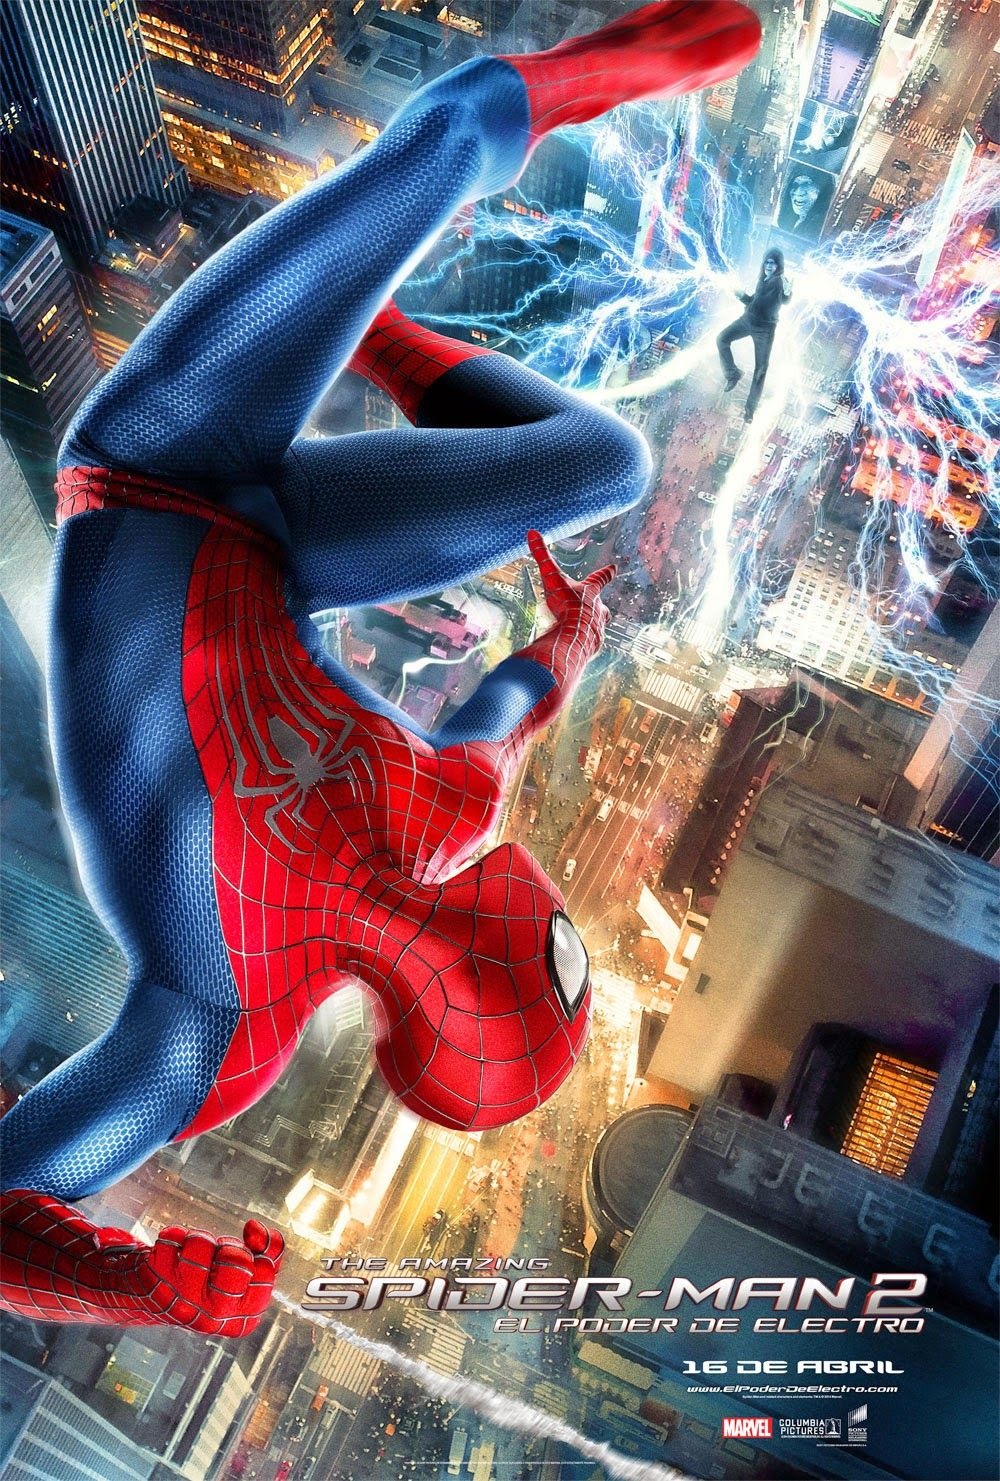 """The Amazing Spider-man 2, director Marc Webb (""""500 Days of Summer"""") is finally free of the déjà vu that plagued his first Spidey film, which had the studio-mandated misfortune of coming so soon after the Sam Raimi-Tobey Maguire trilogy. The Amazing Spider-Man 2 hitting theaters today, the superhero genre is on my mind."""